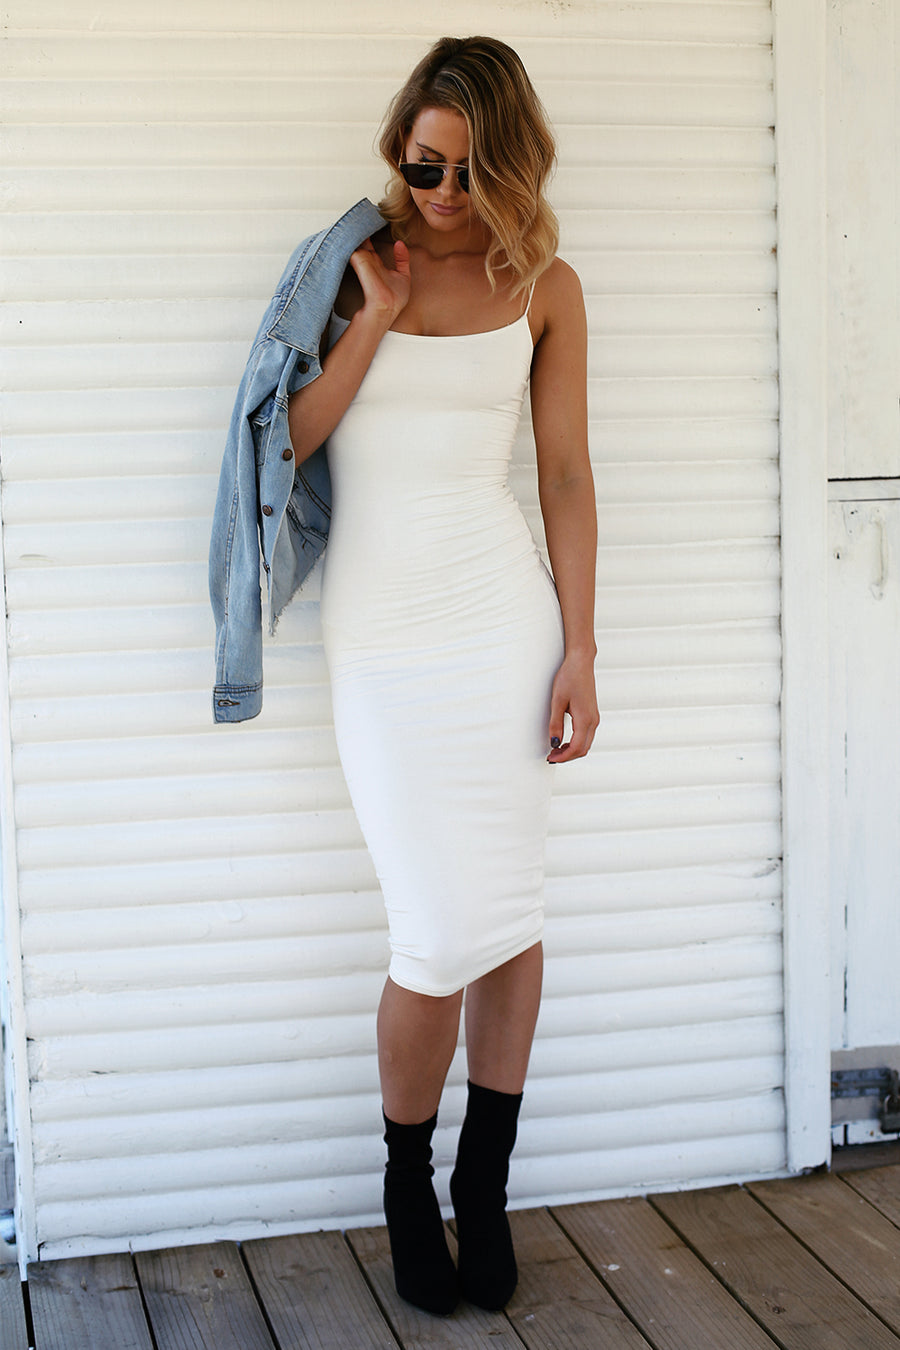 Kimmy K Slip Dress in White - HER Empire Fashion Boutique Terrigal & Online